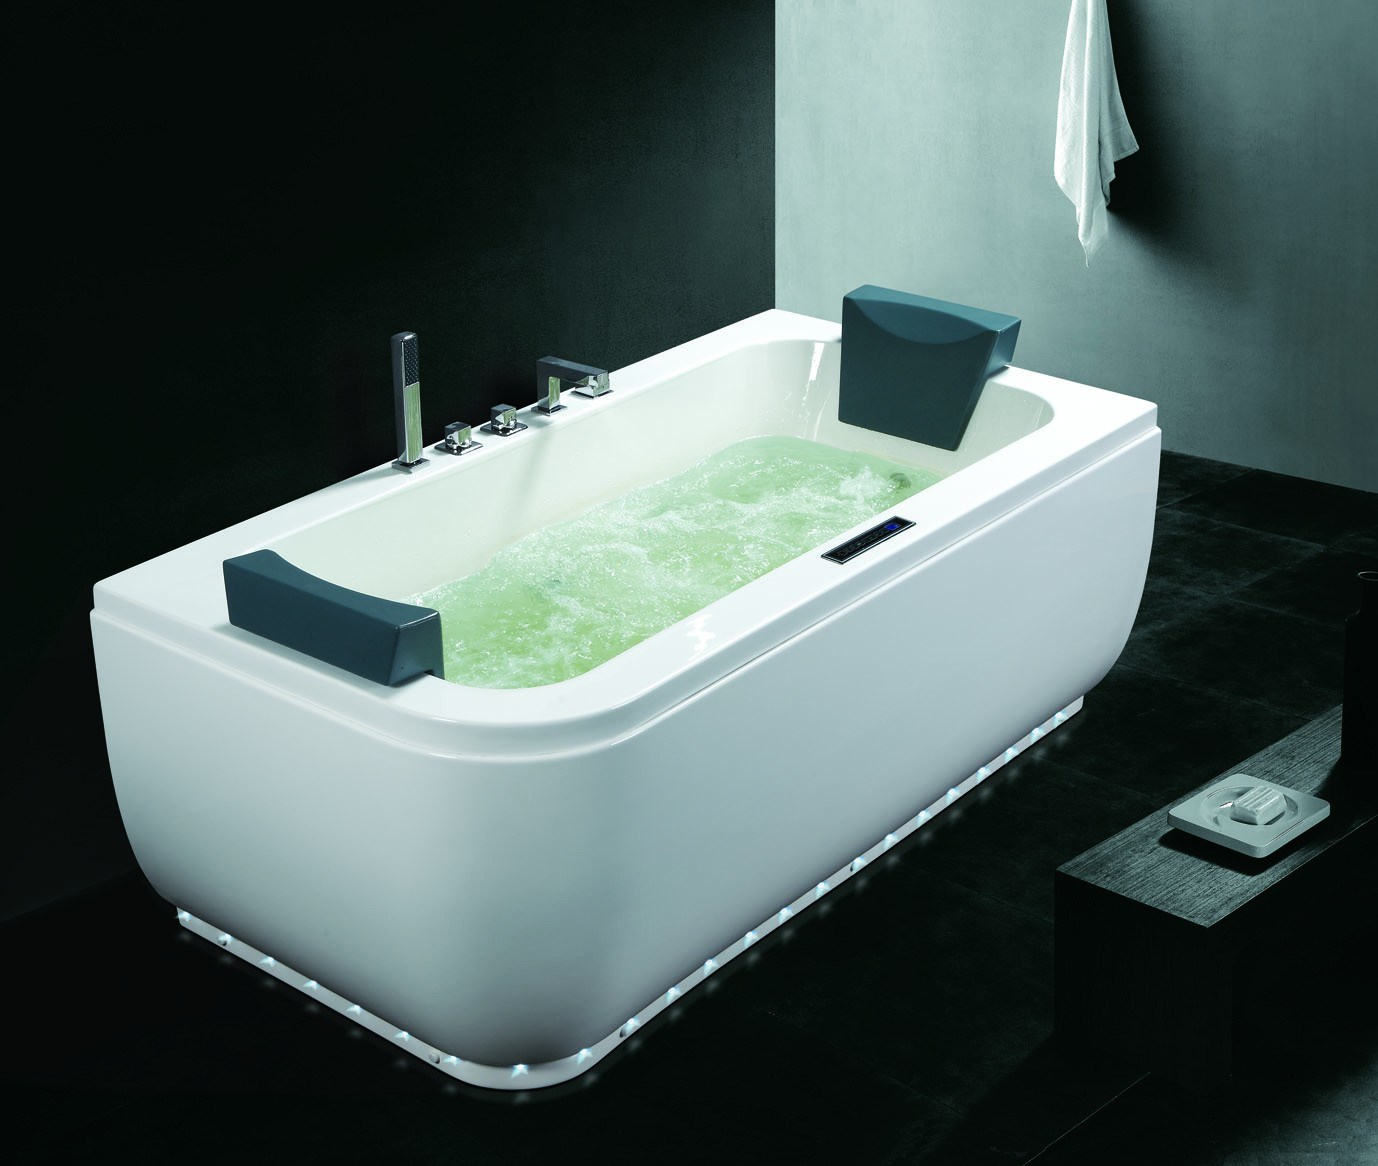 Amazing Bubble Massage Tubs Ornament - Bathtub Design Ideas - valtak.com